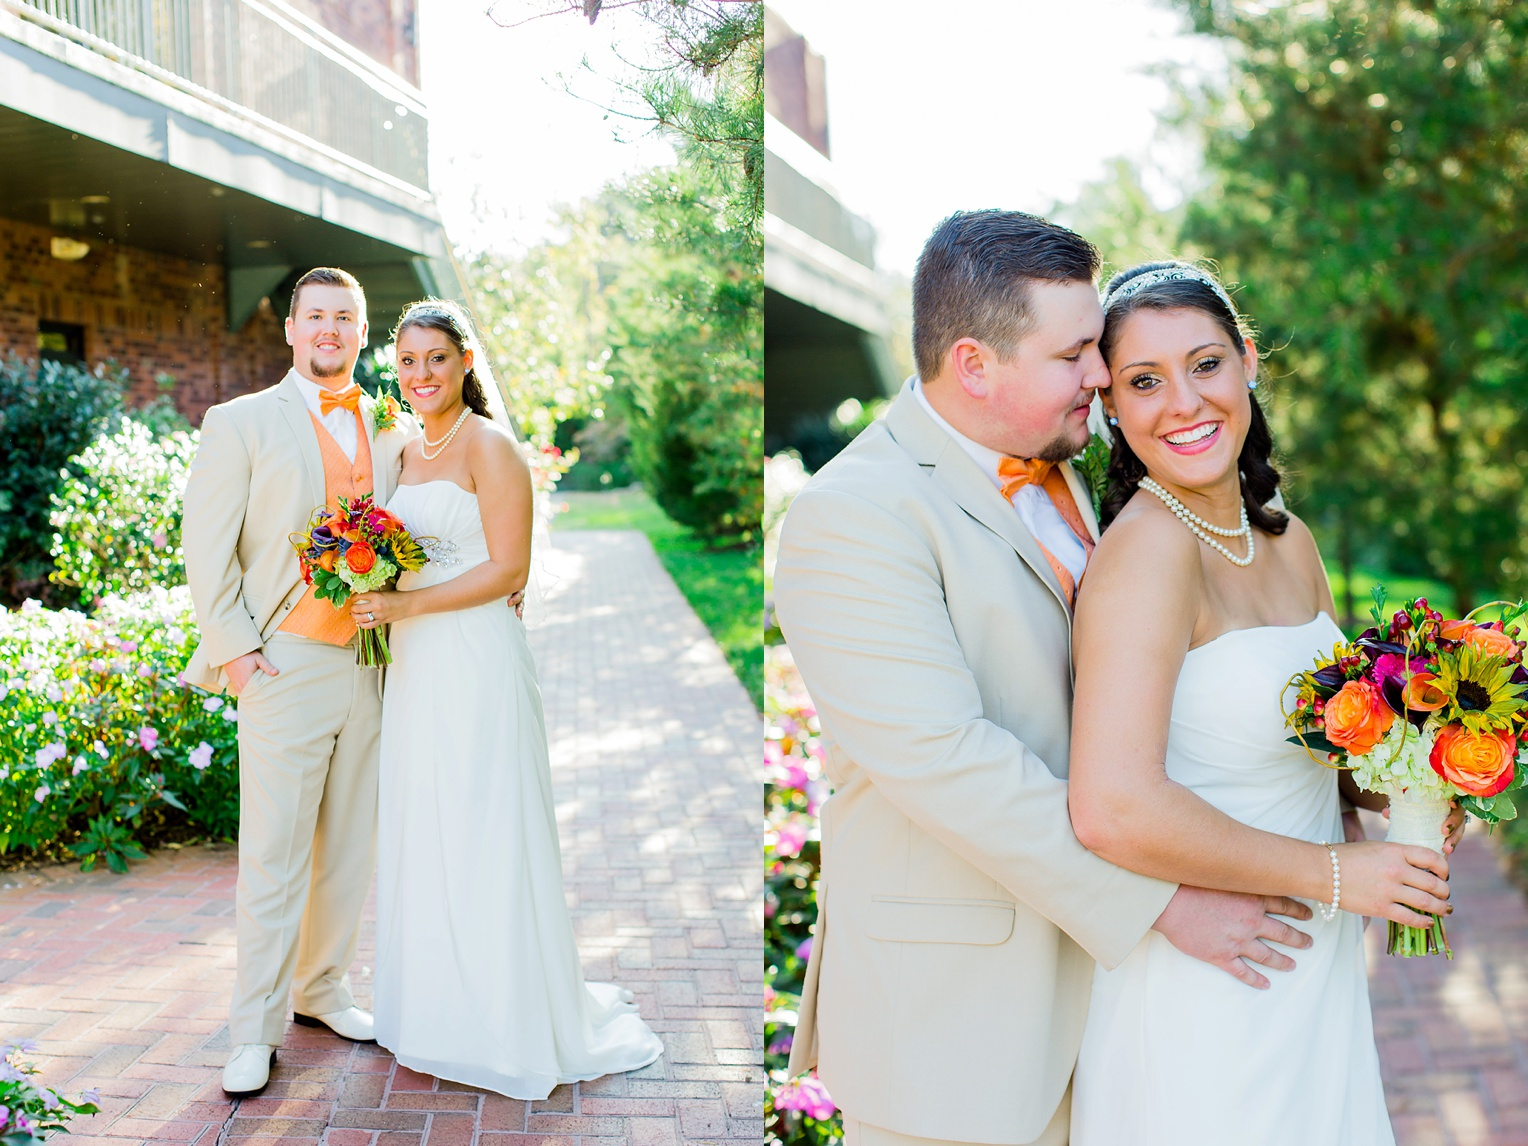 Megan Kelsey Photography | Harbour View Wedding | Waterfront Occoquan Wedding Venue | Northern Virginia Wedding Photographer